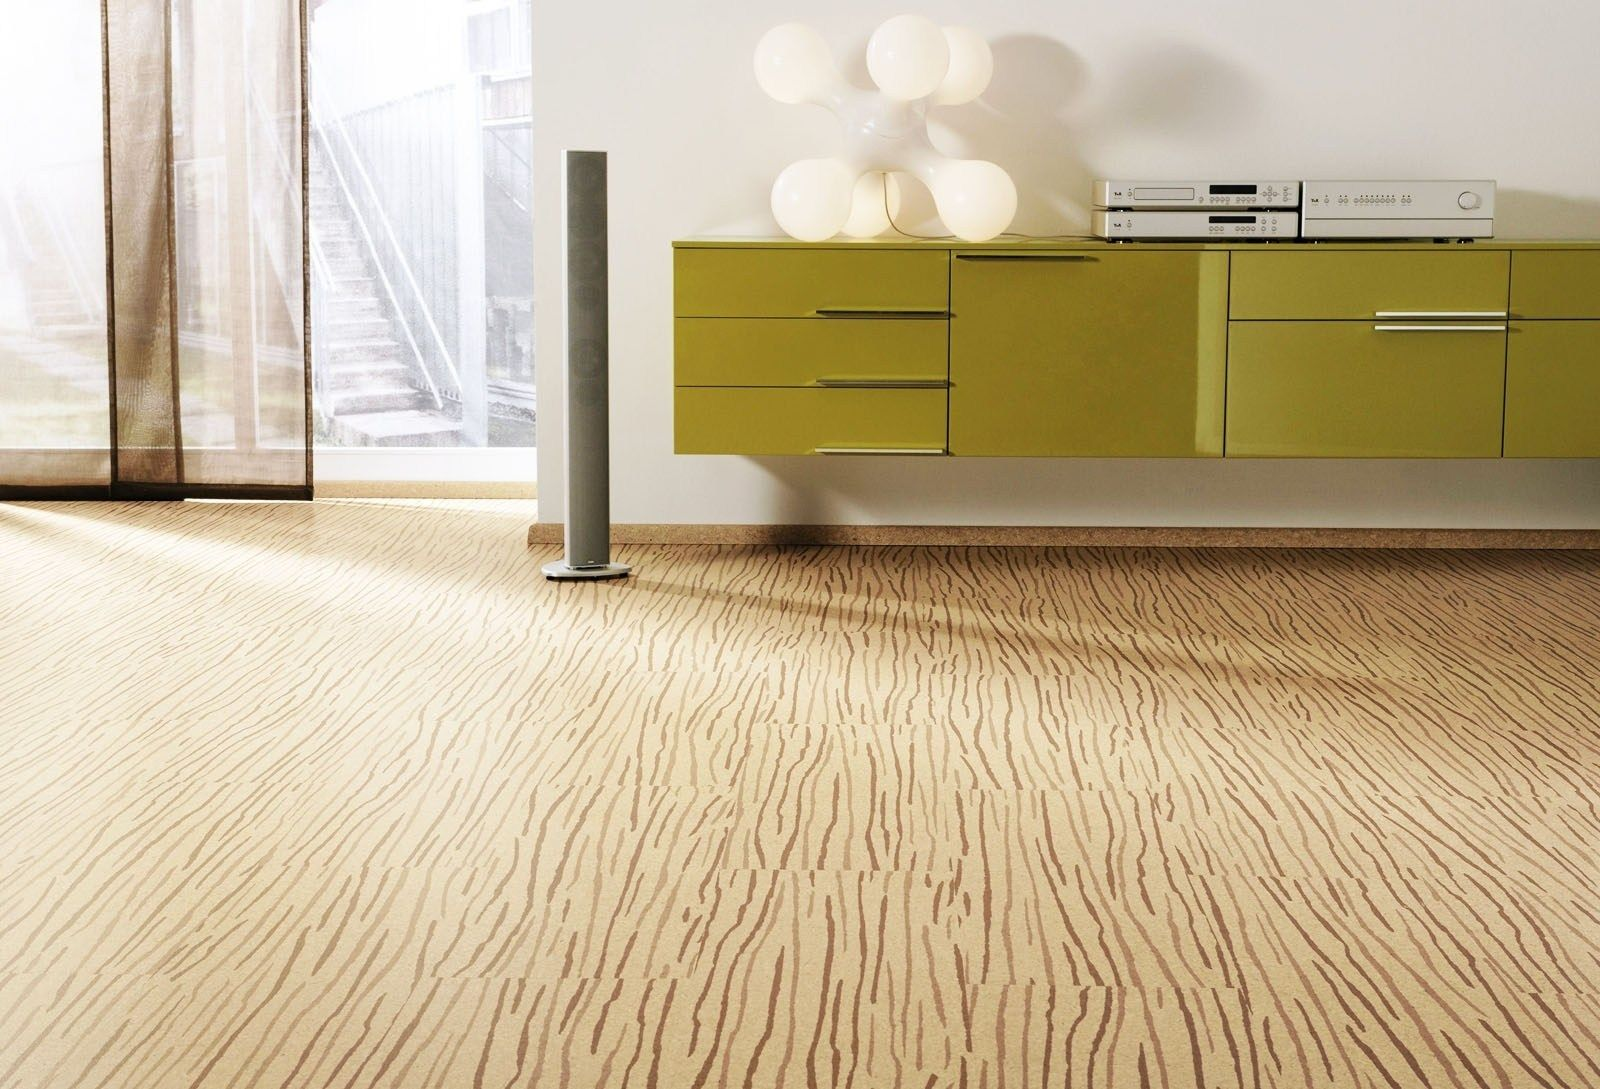 Cork flooring reviews pros and cons, manufacturers and